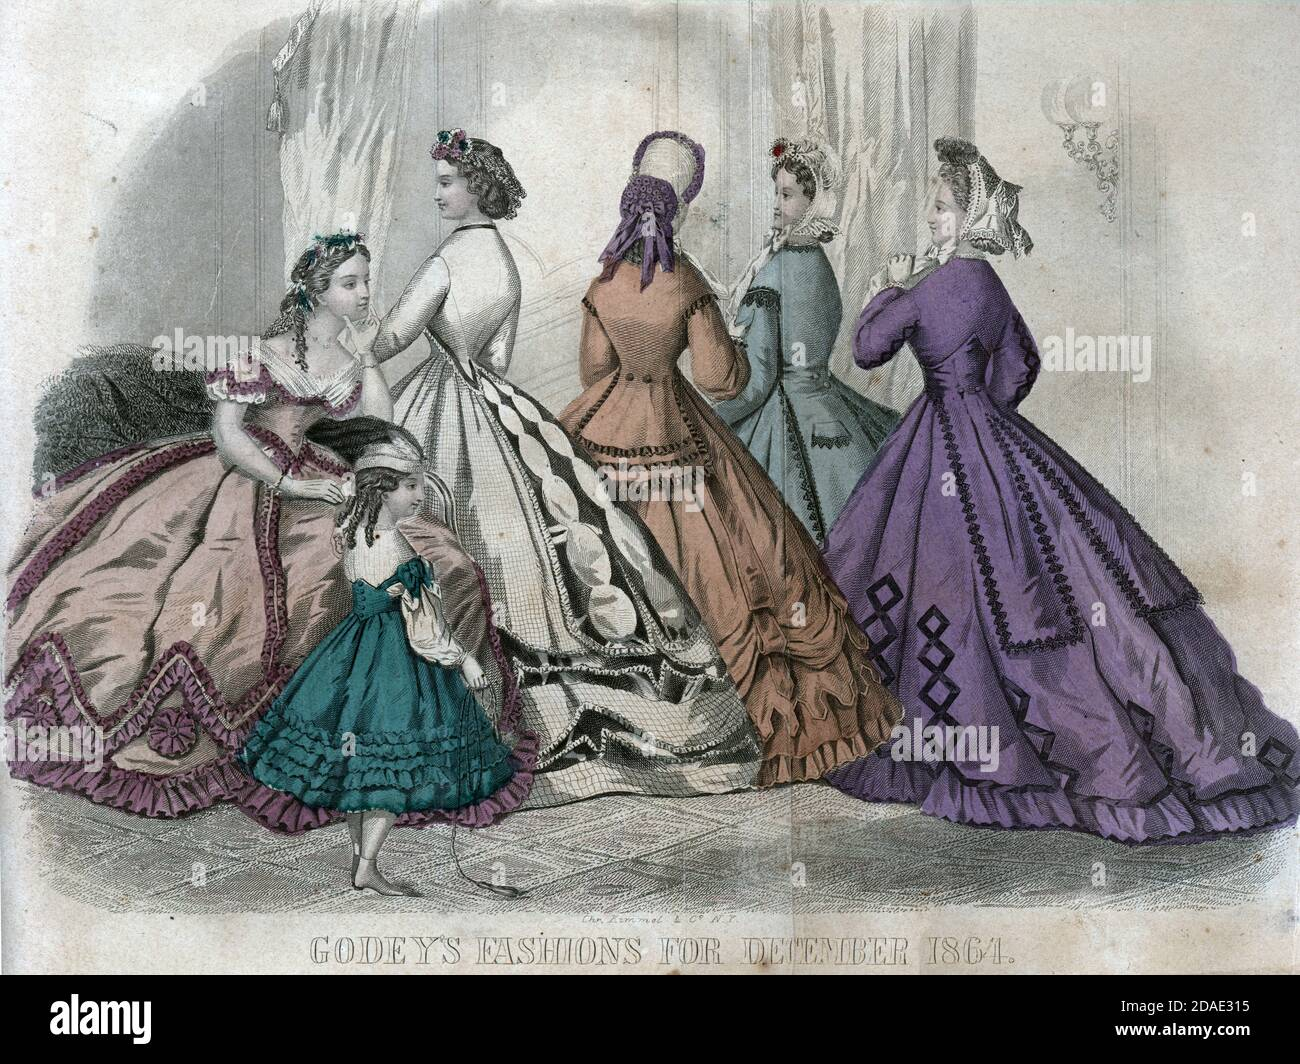 Godey's Fashion for December 1864 from Godey's Lady's Book and Magazine, December, 1864, Volume LXIX, (Volume 69), Philadelphia, Louis A. Godey, Sarah Josepha Hale, Stock Photo